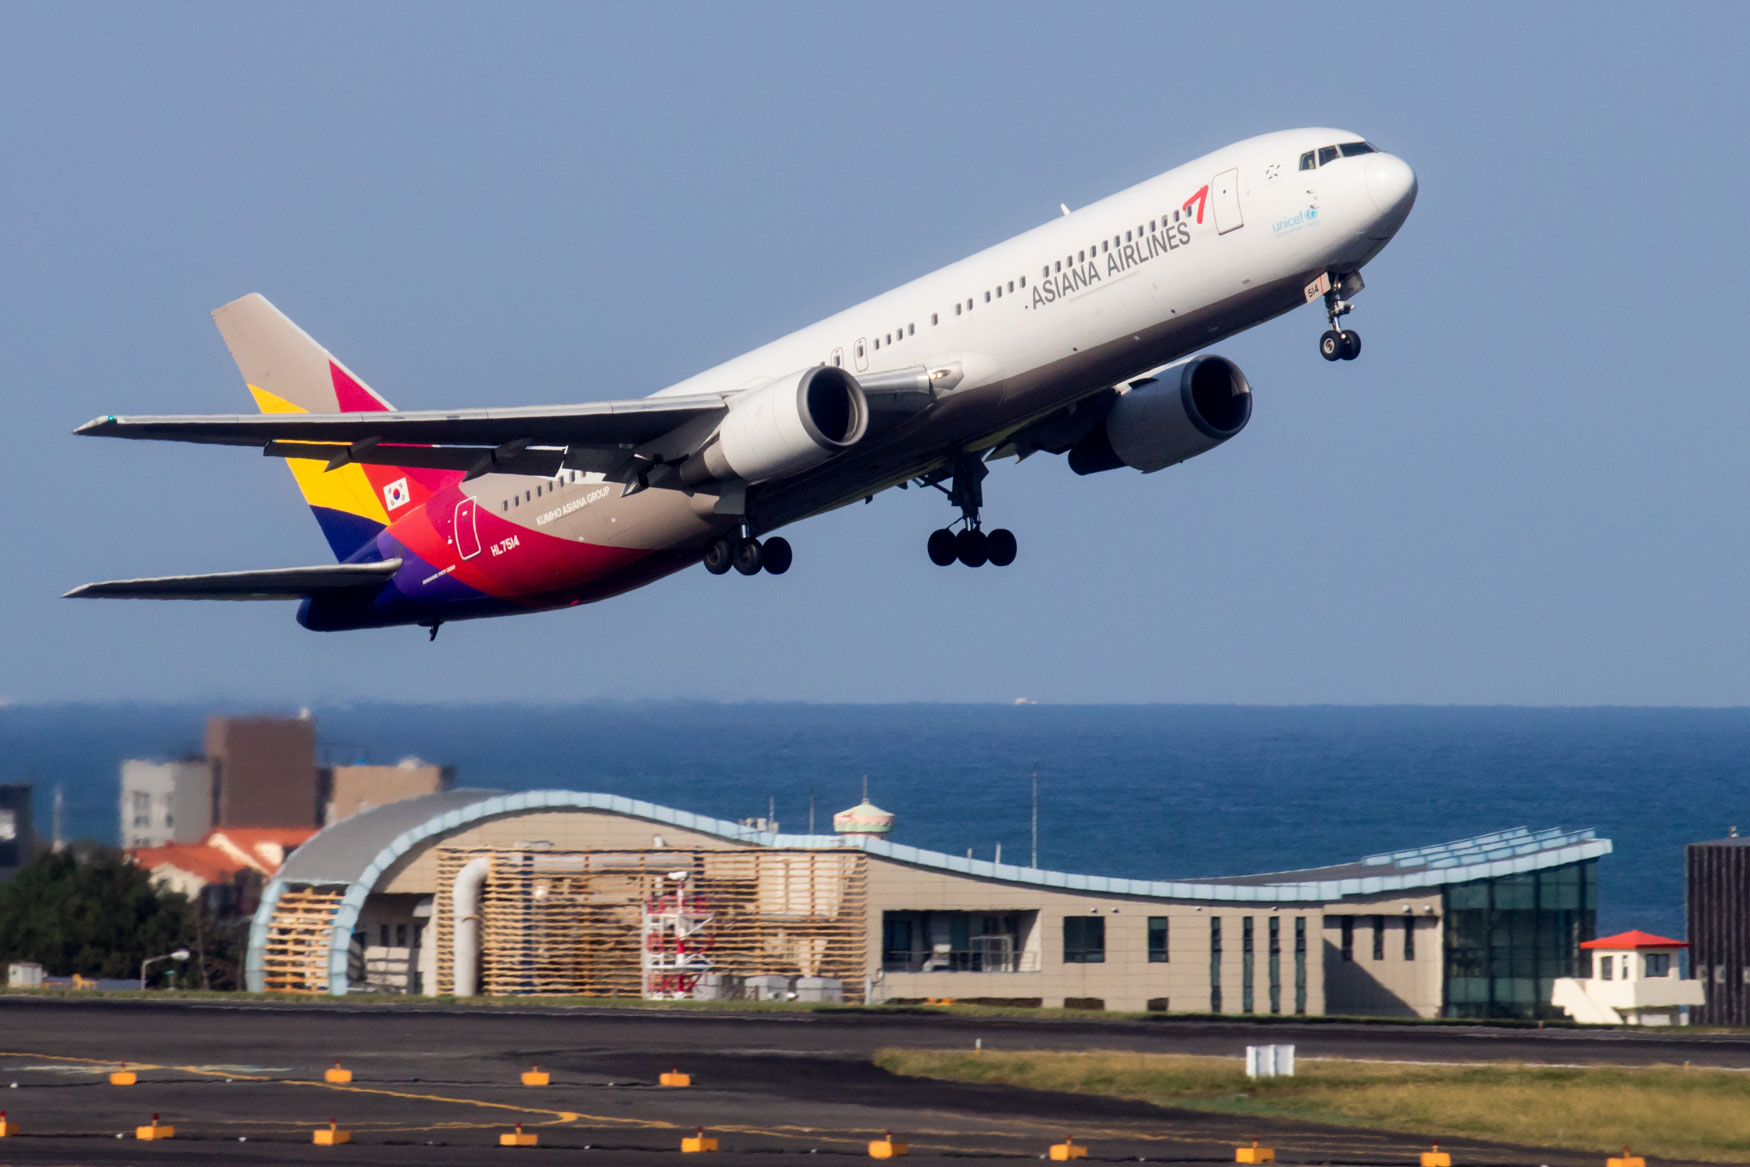 Asiana Airlines 767-300